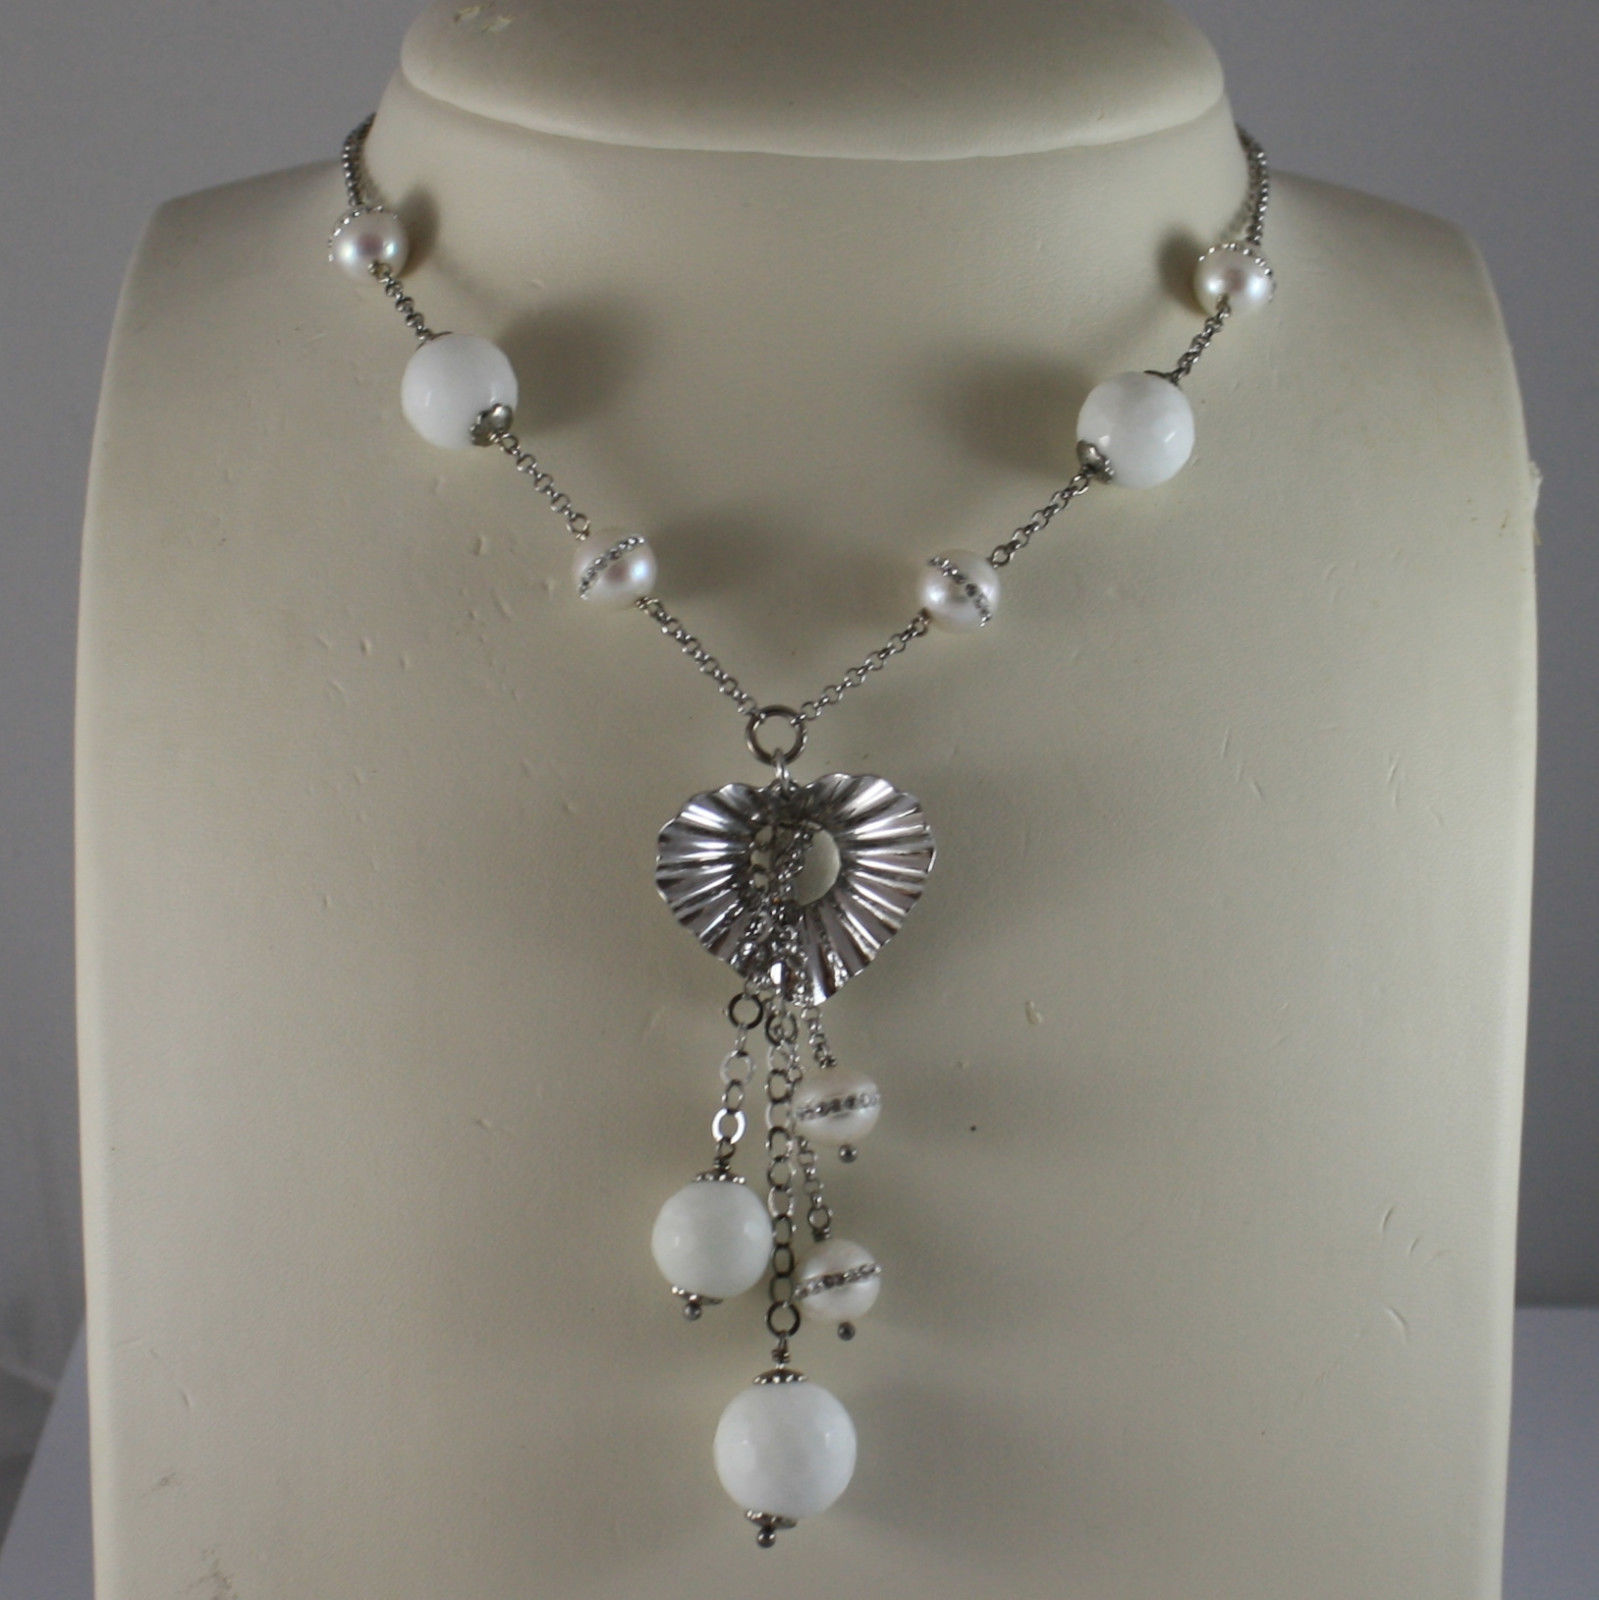 .925 SILVER RHODIUM NECKLACE WITH WHITE AGATE AND WHITE PEARLS WITH ZIRCONS